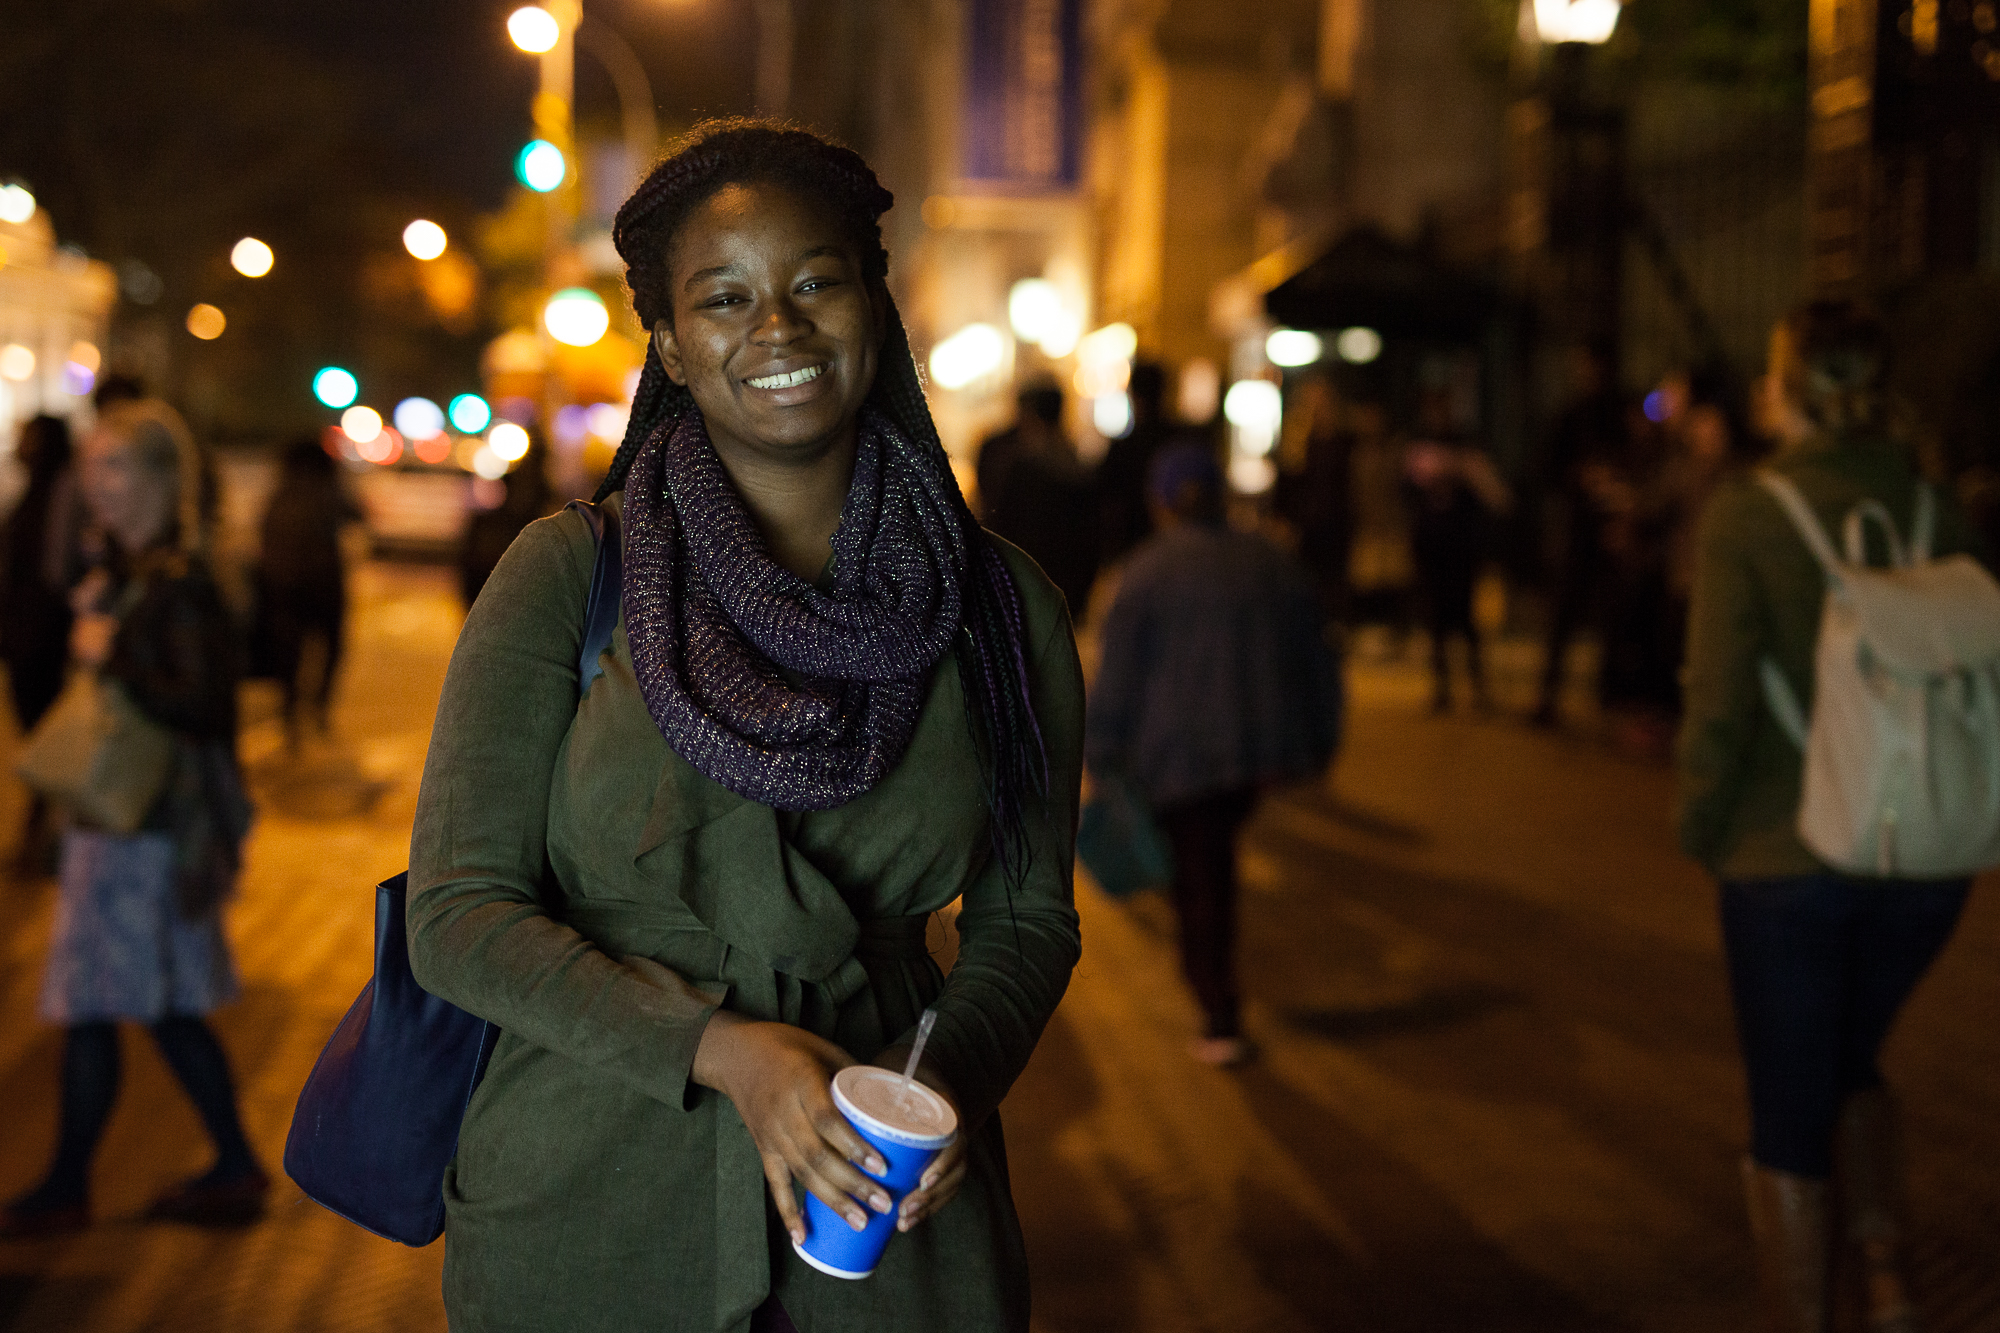 Maymouna Sissoko's parent always reminded her of the privileges of being an American.